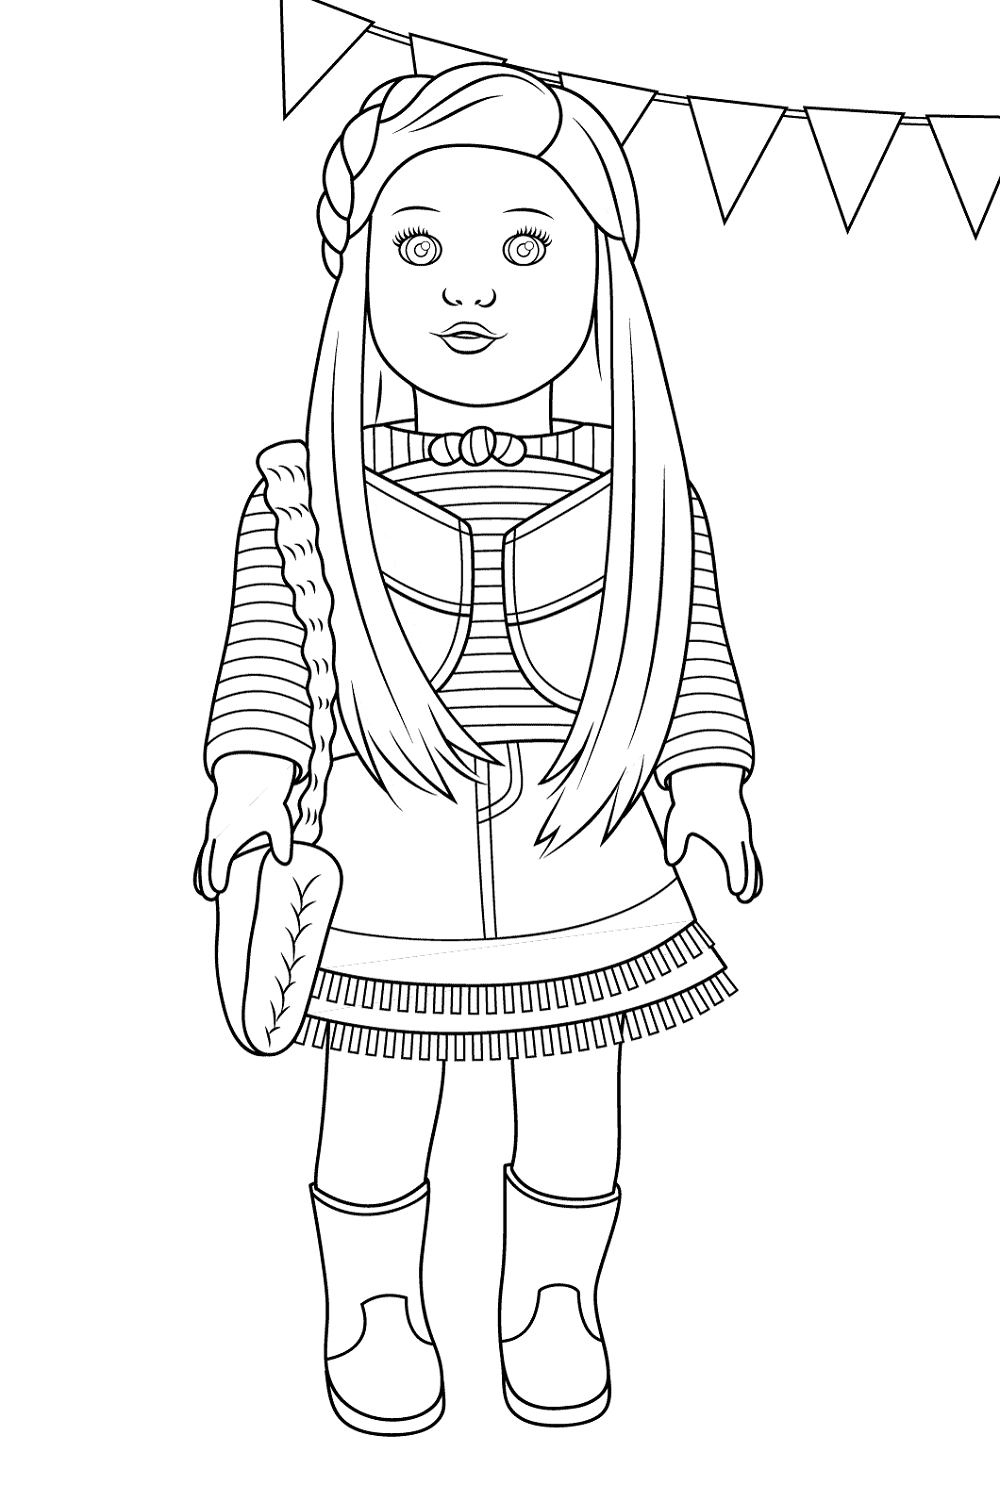 American Girl Doll Coloring Pages Printable American Girl Doll Printables American Girl Birthday Coloring Pages For Girls